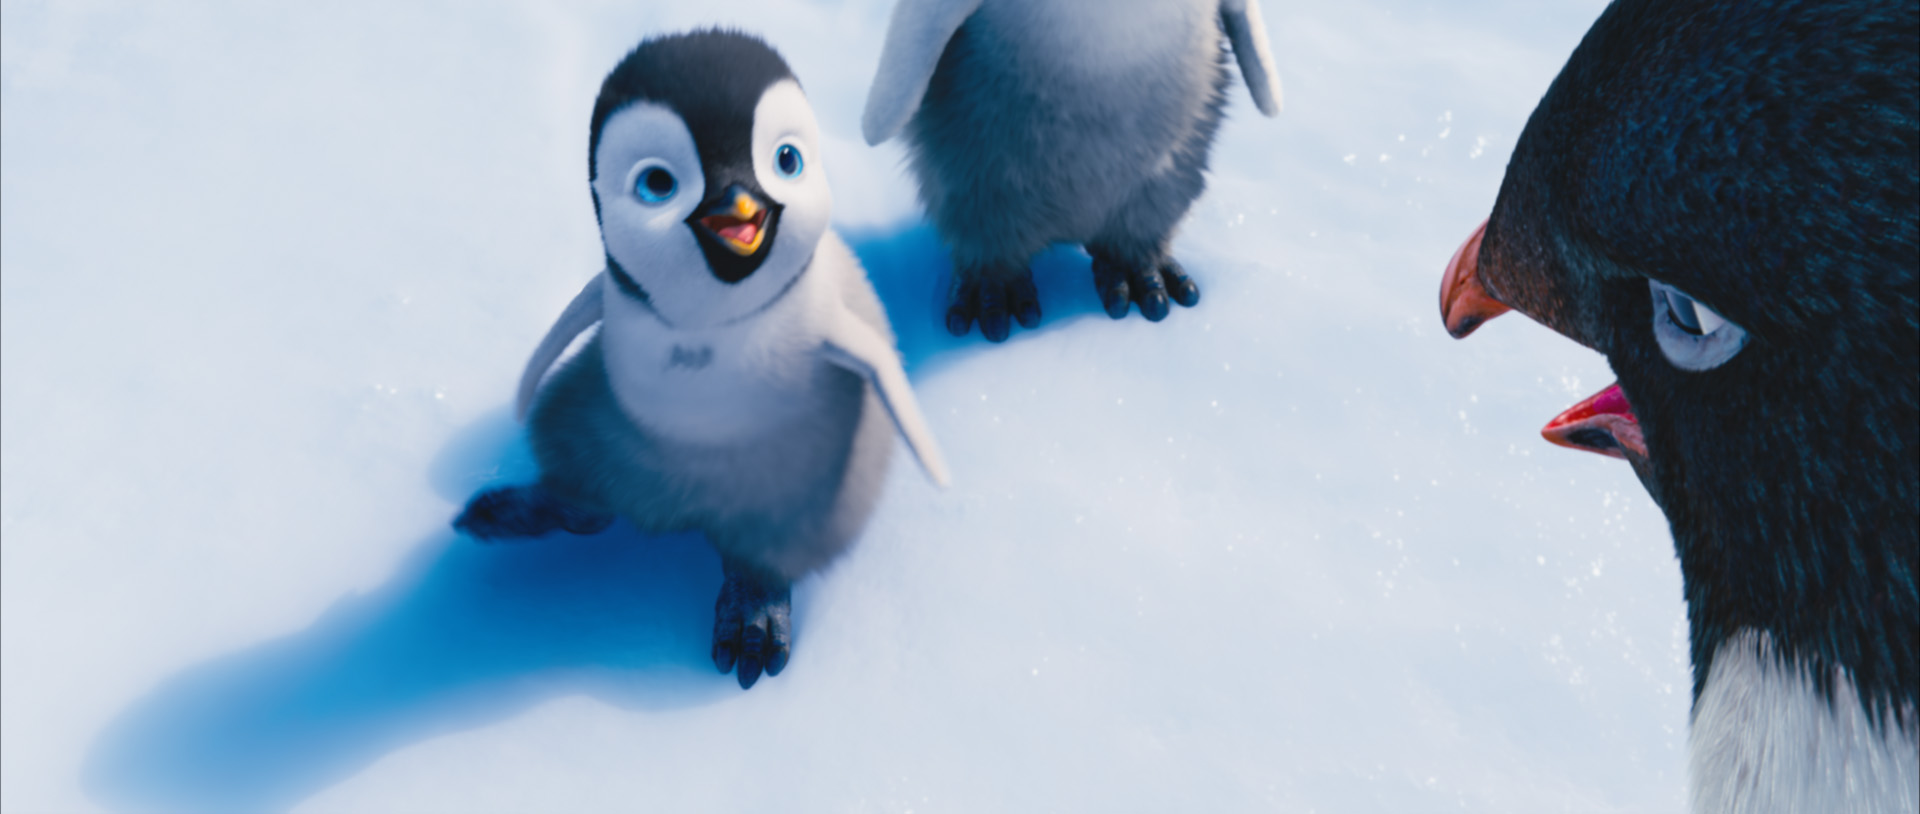 happy feet the movie and how it relates to social psychology Boys' attachments to dads in child development by shannon philpott feb 12, 2013  it could negatively affect his development, social skills and independence.